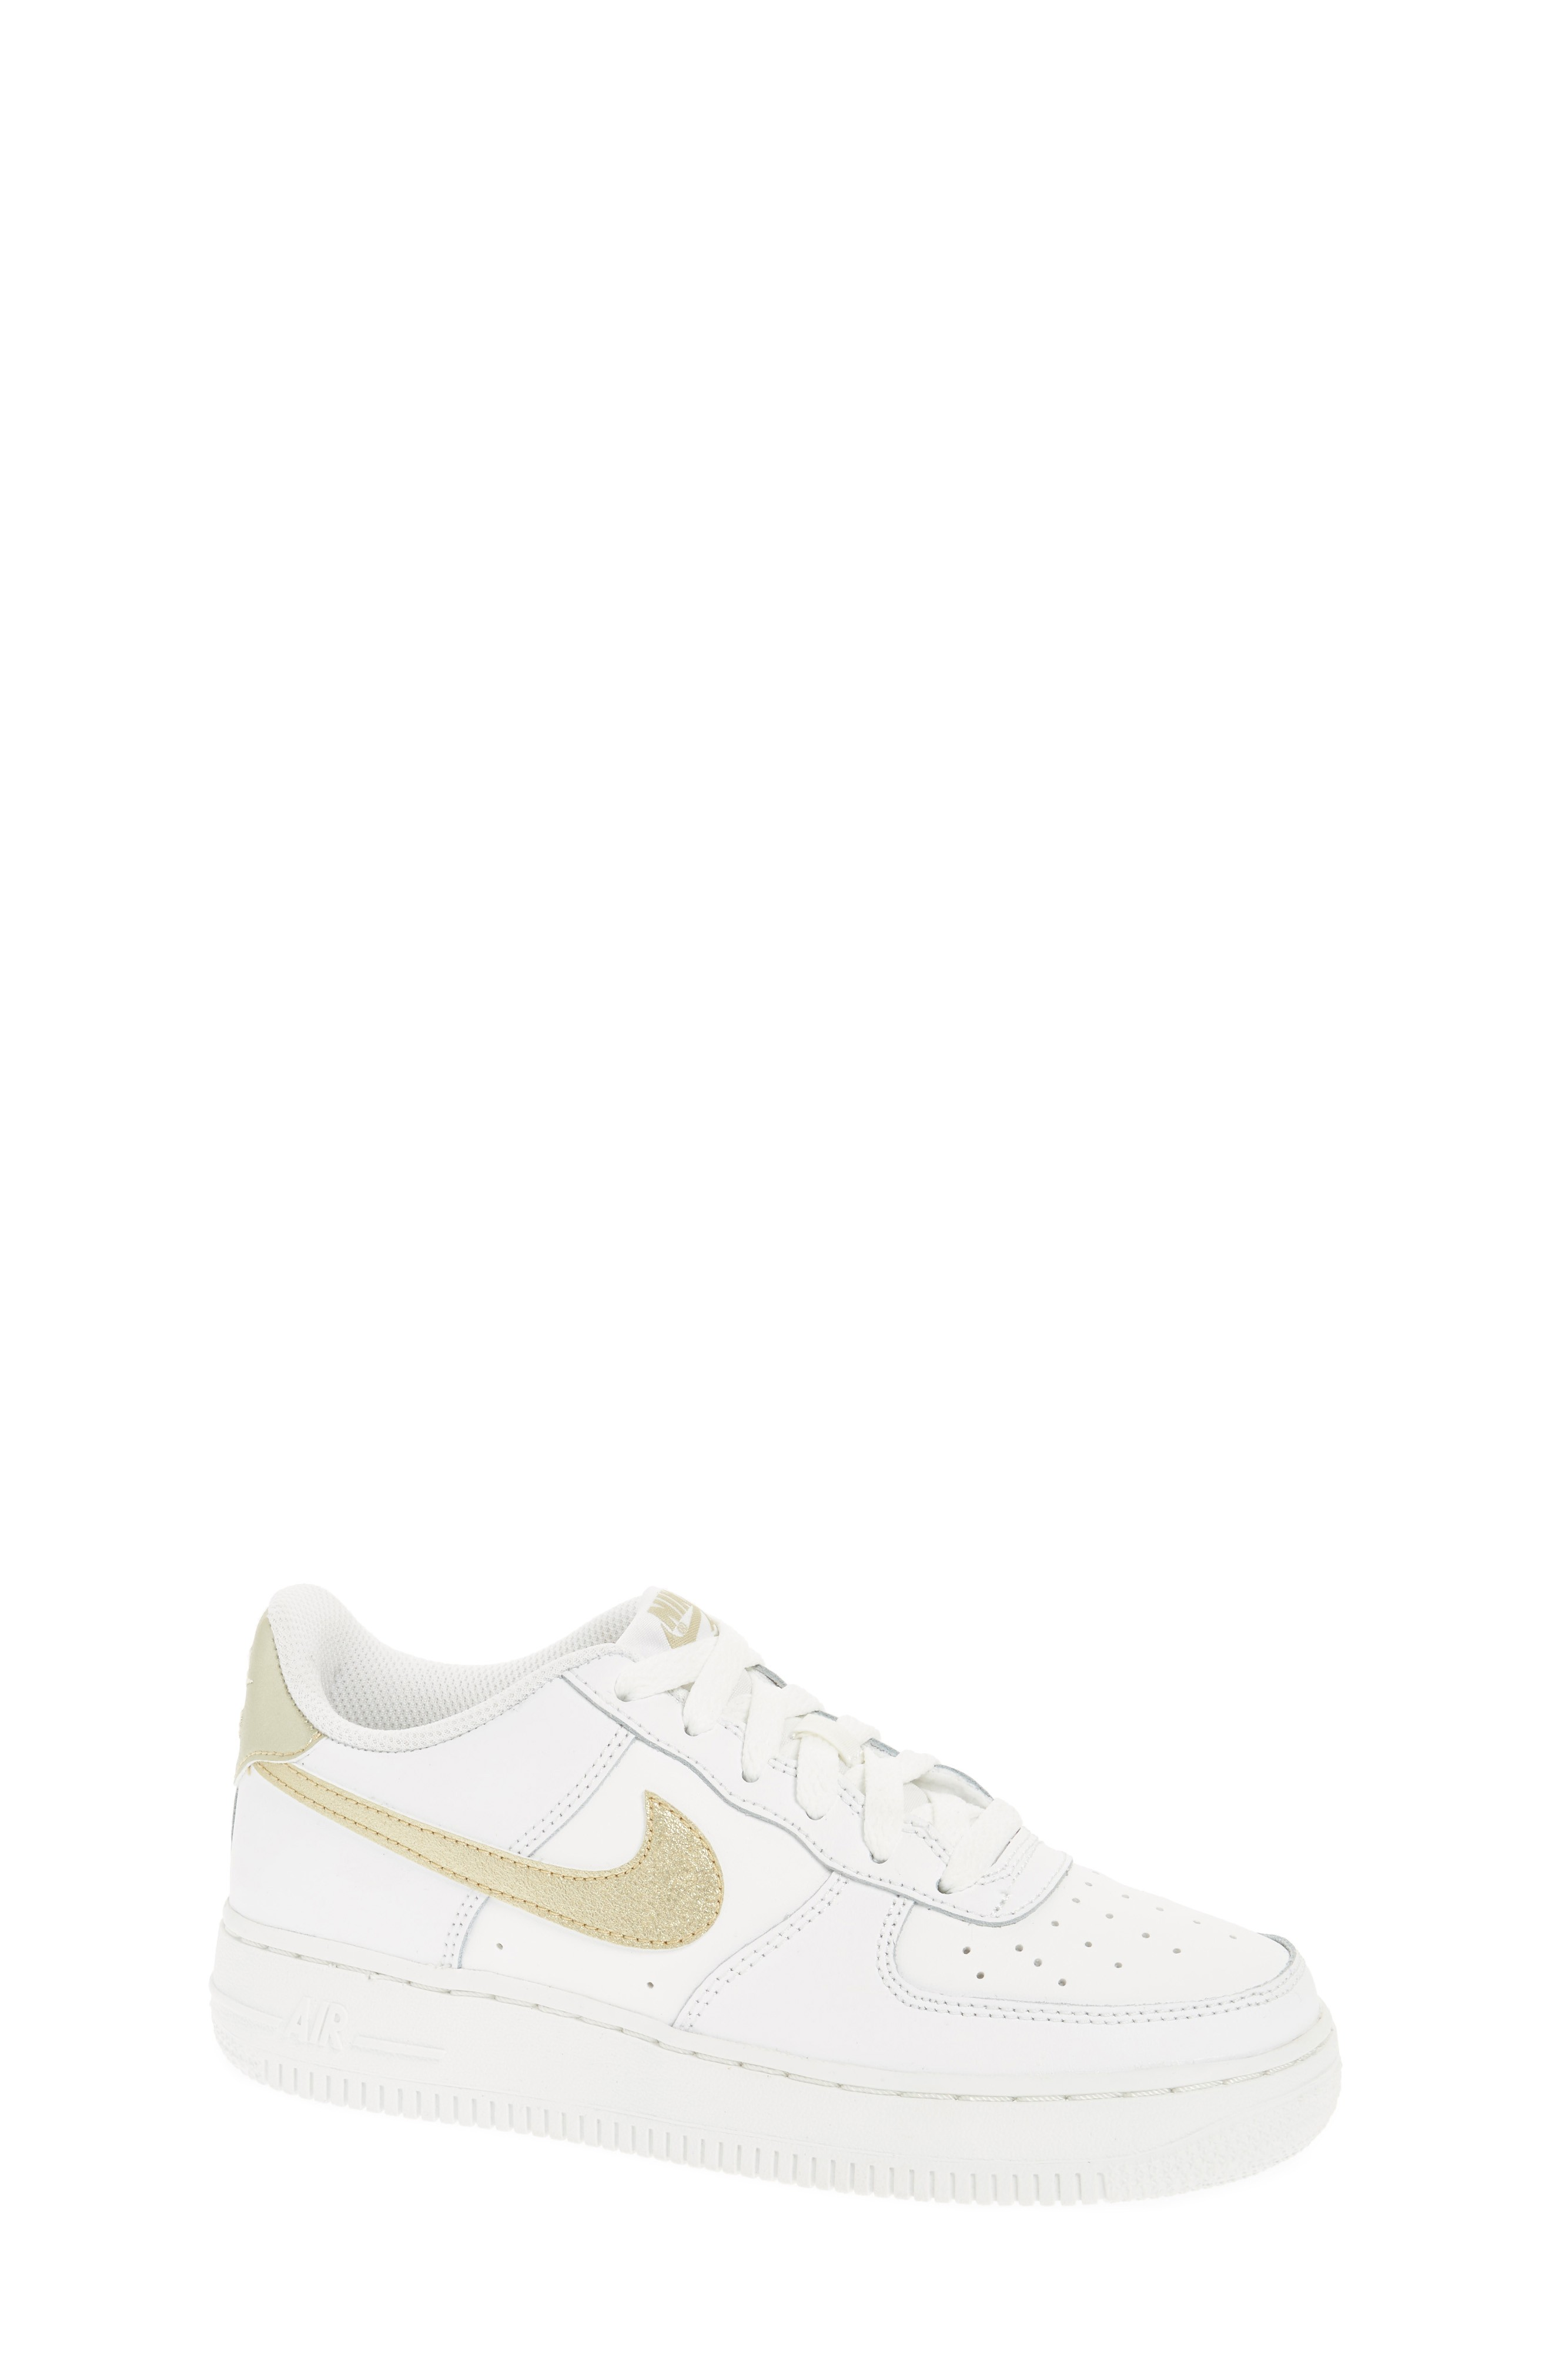 2640x4048 Air Force 1 Nordstrom